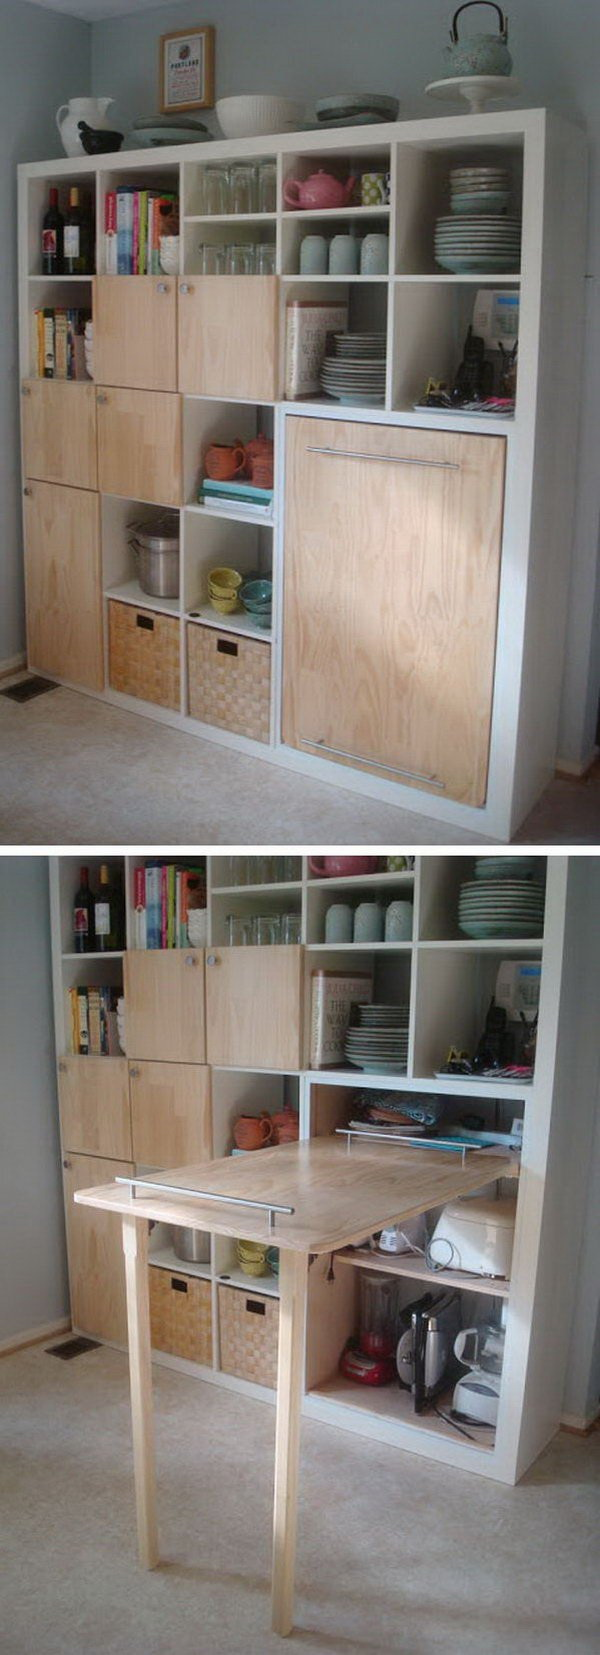 Pull-out Counter Top for Kitchen Storage: Create this pull-out counter top for more kitchen storage! Such a cheap and easy DIY project that looks so stylish in the kitchen!